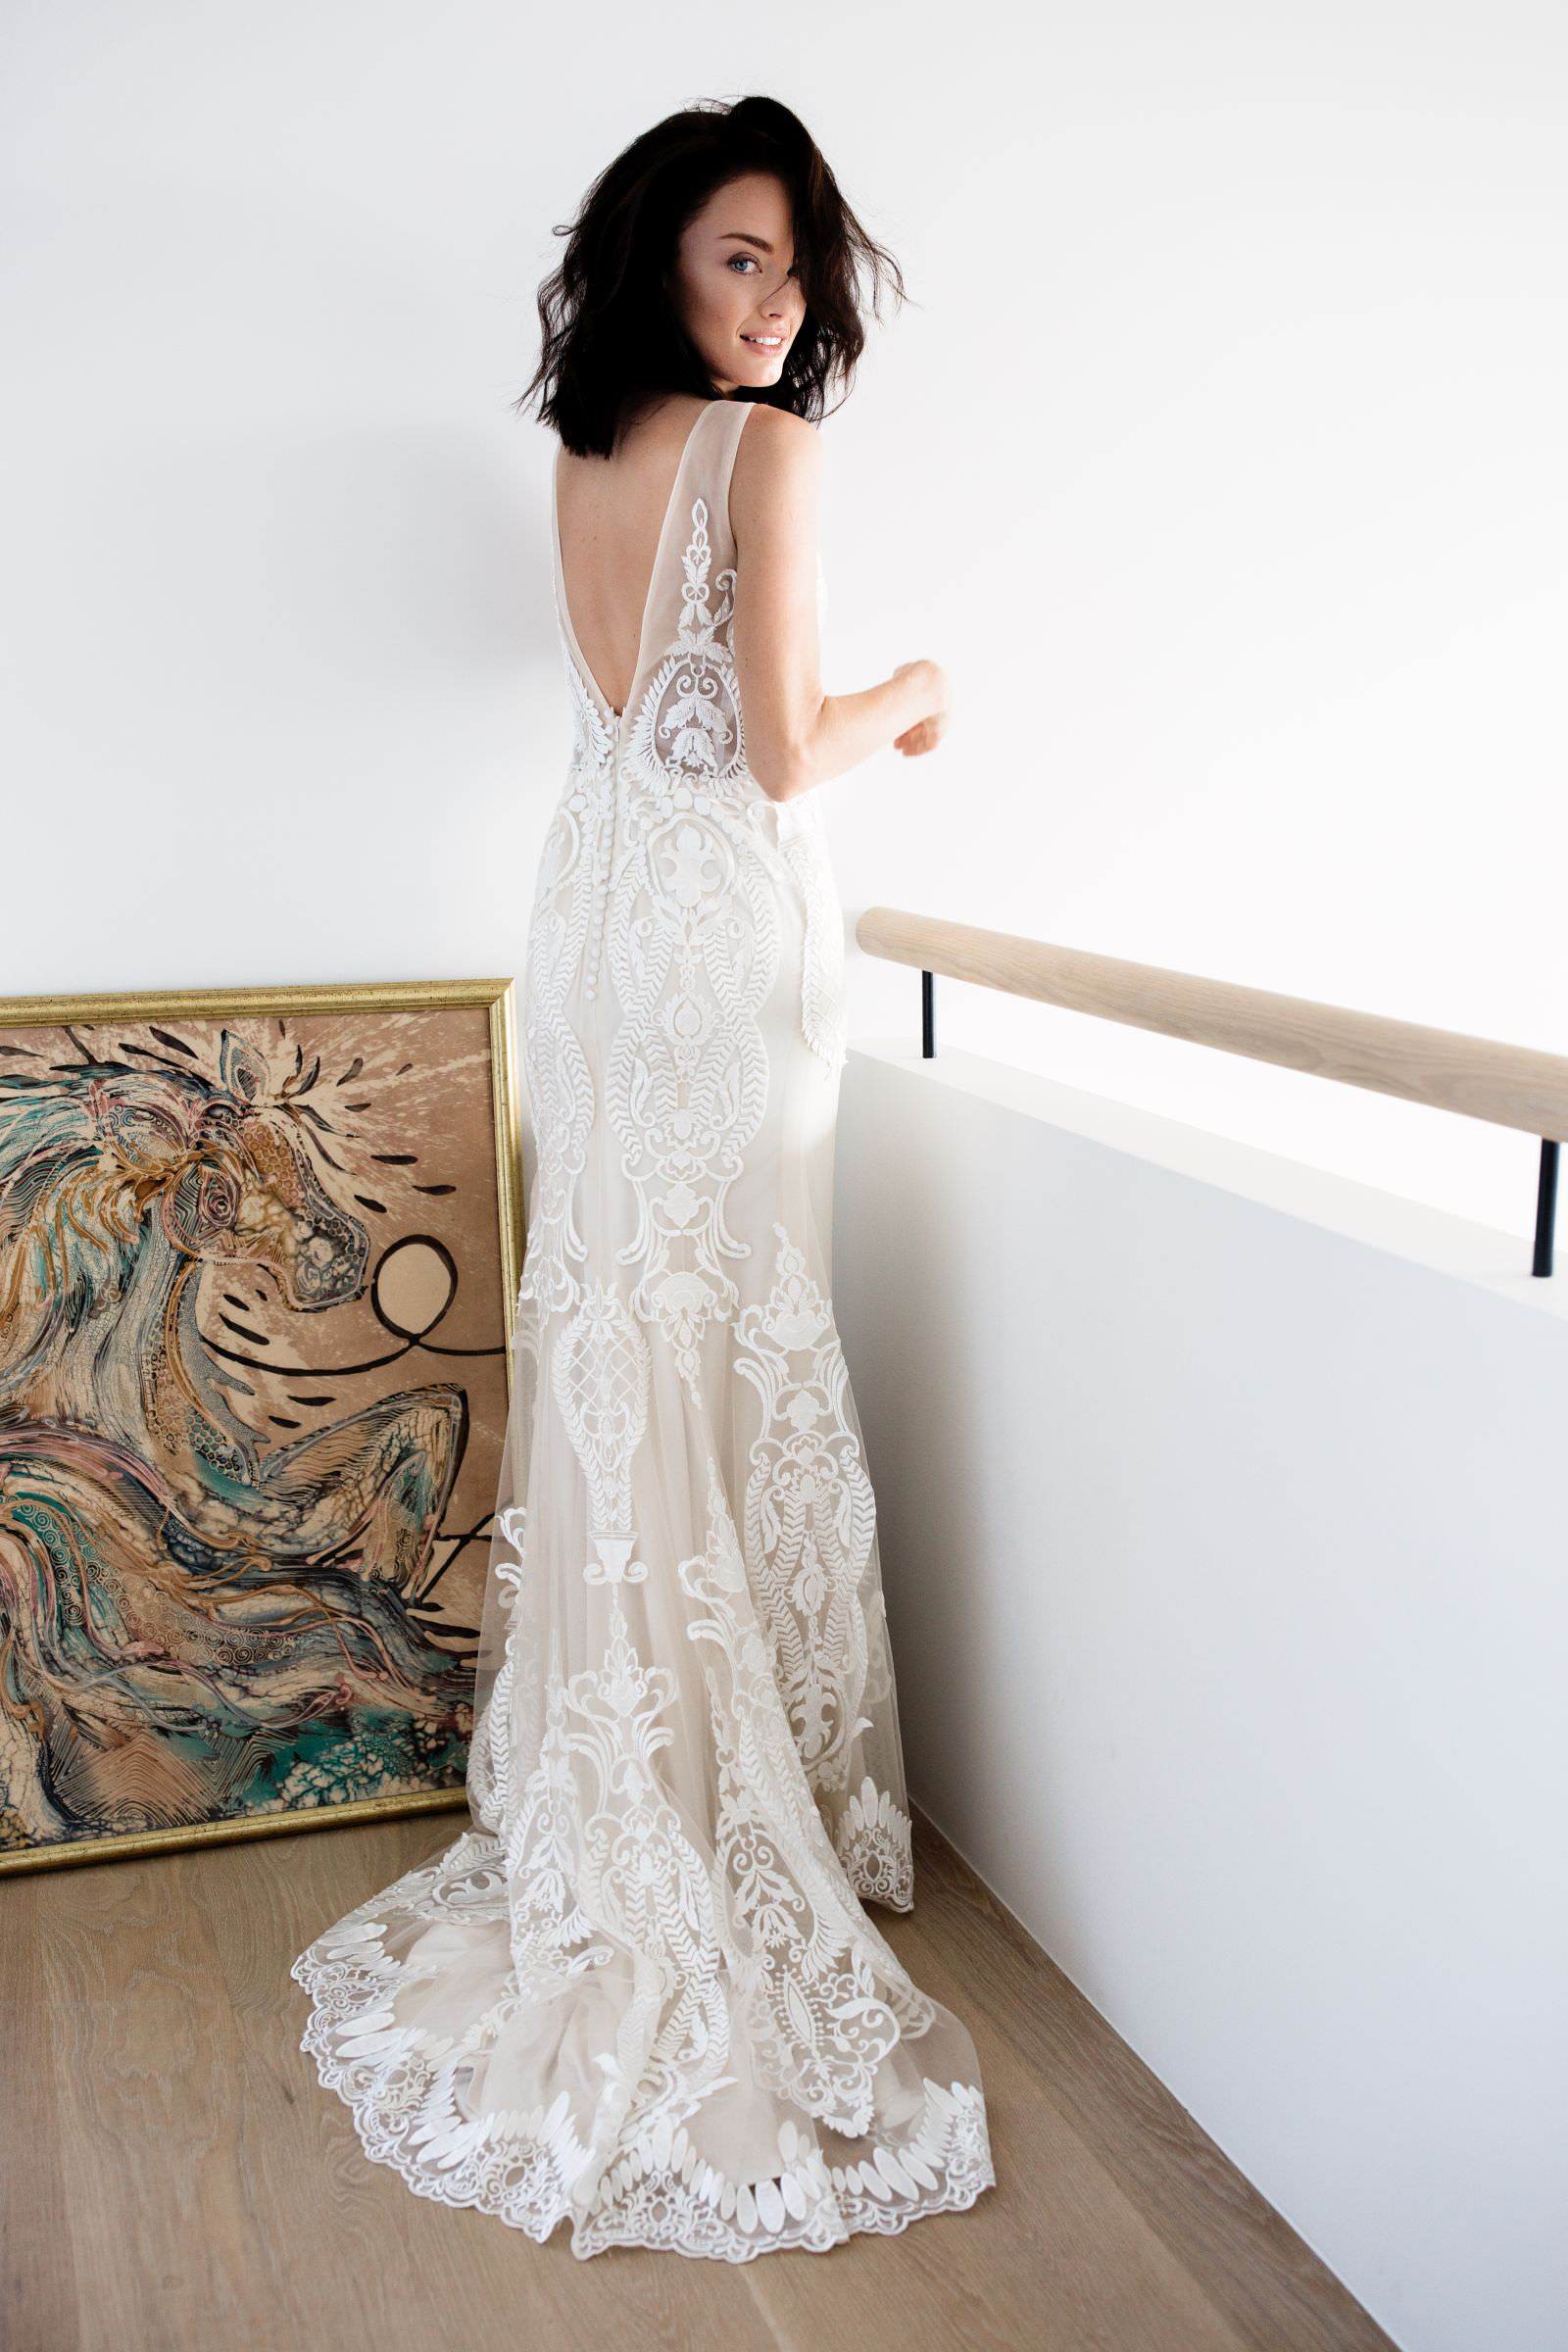 Located in Wellington and Christchurch, Paperswan Bride is the exclusive stockist of a range of wedding dress designer brands.